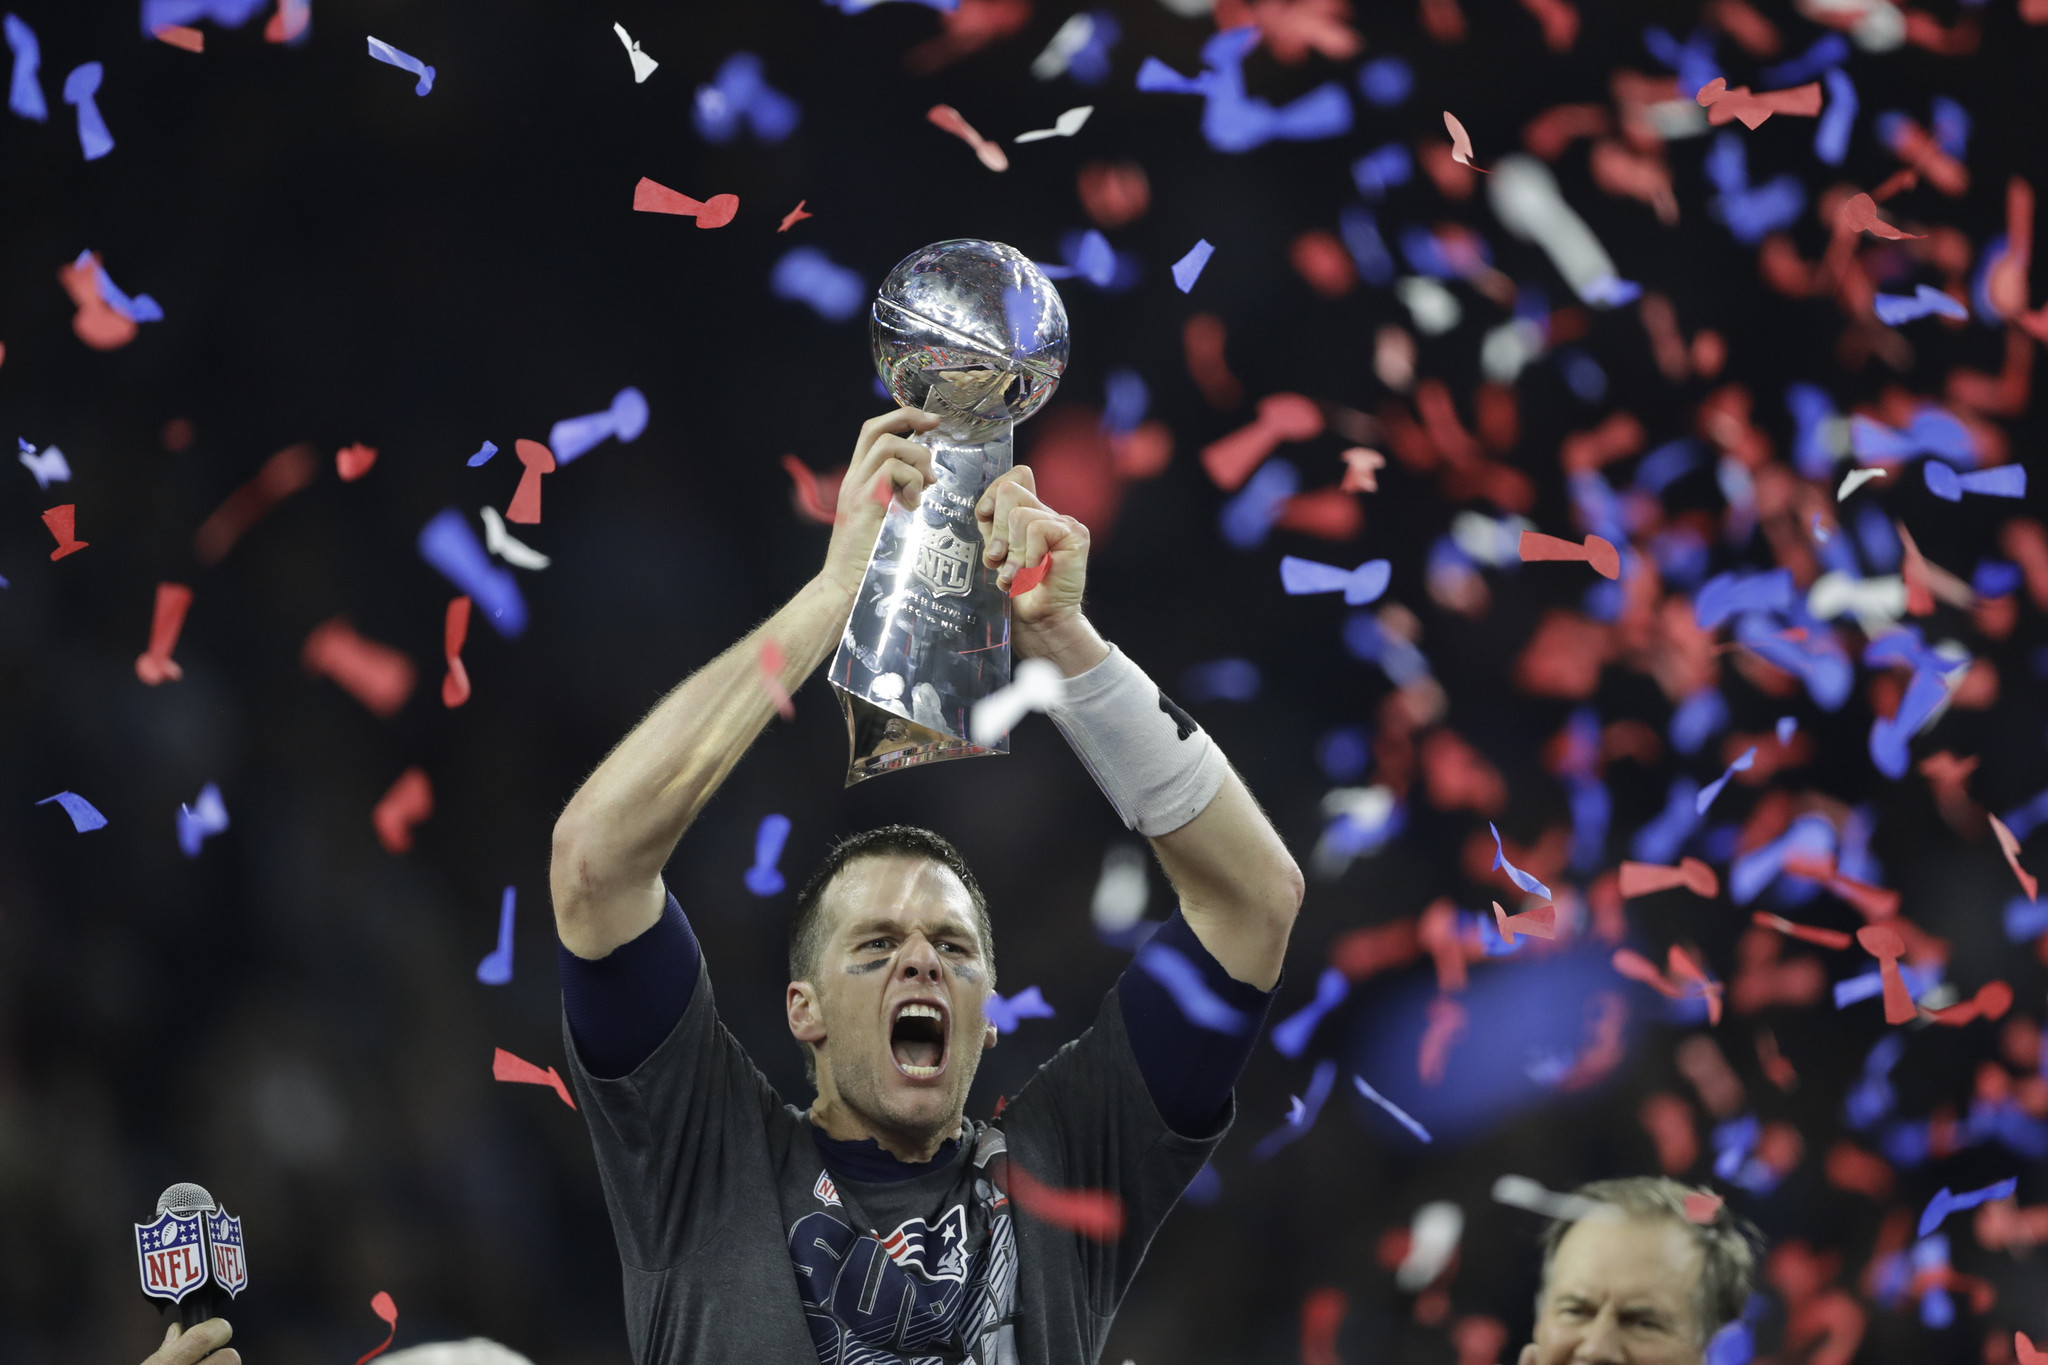 la-sp-super-bowl-li-patriots-vs-falcons-20170205-pictures.jpg